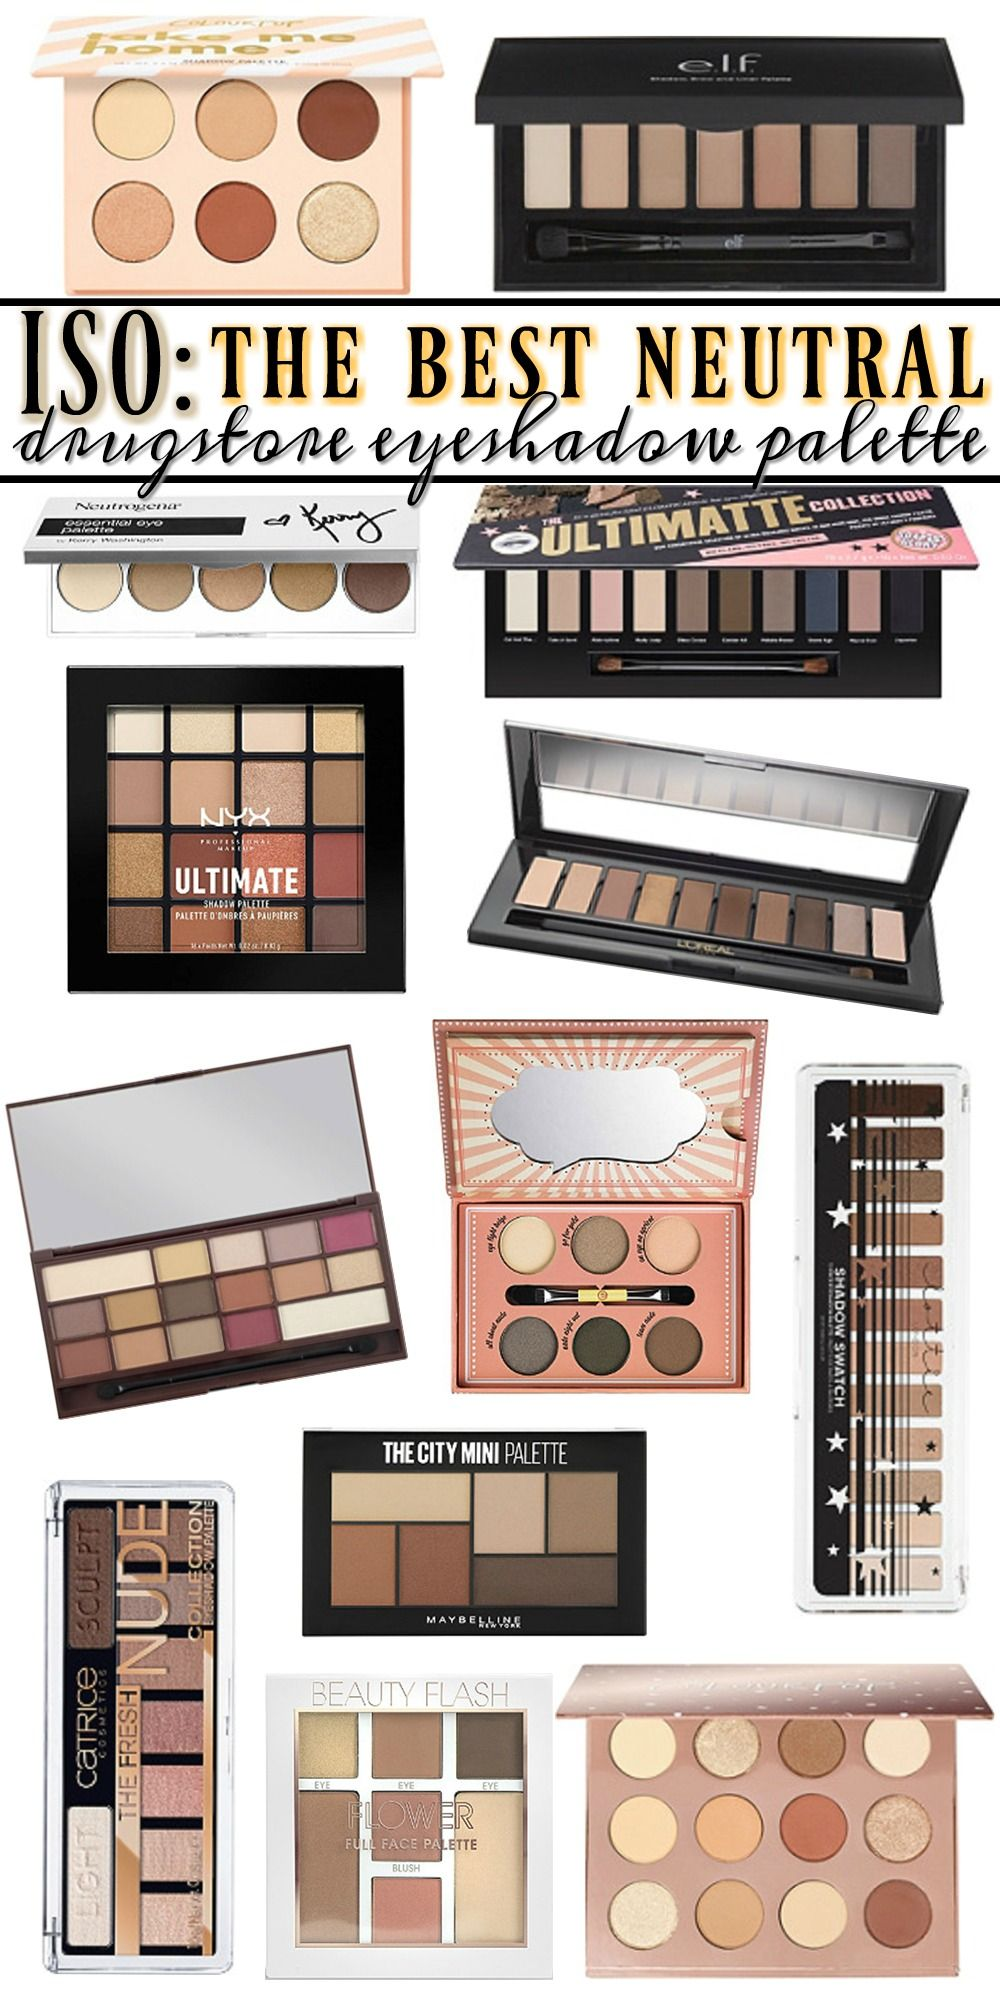 The BEST Drugstore Neutral Eyeshadow Palette Neutral